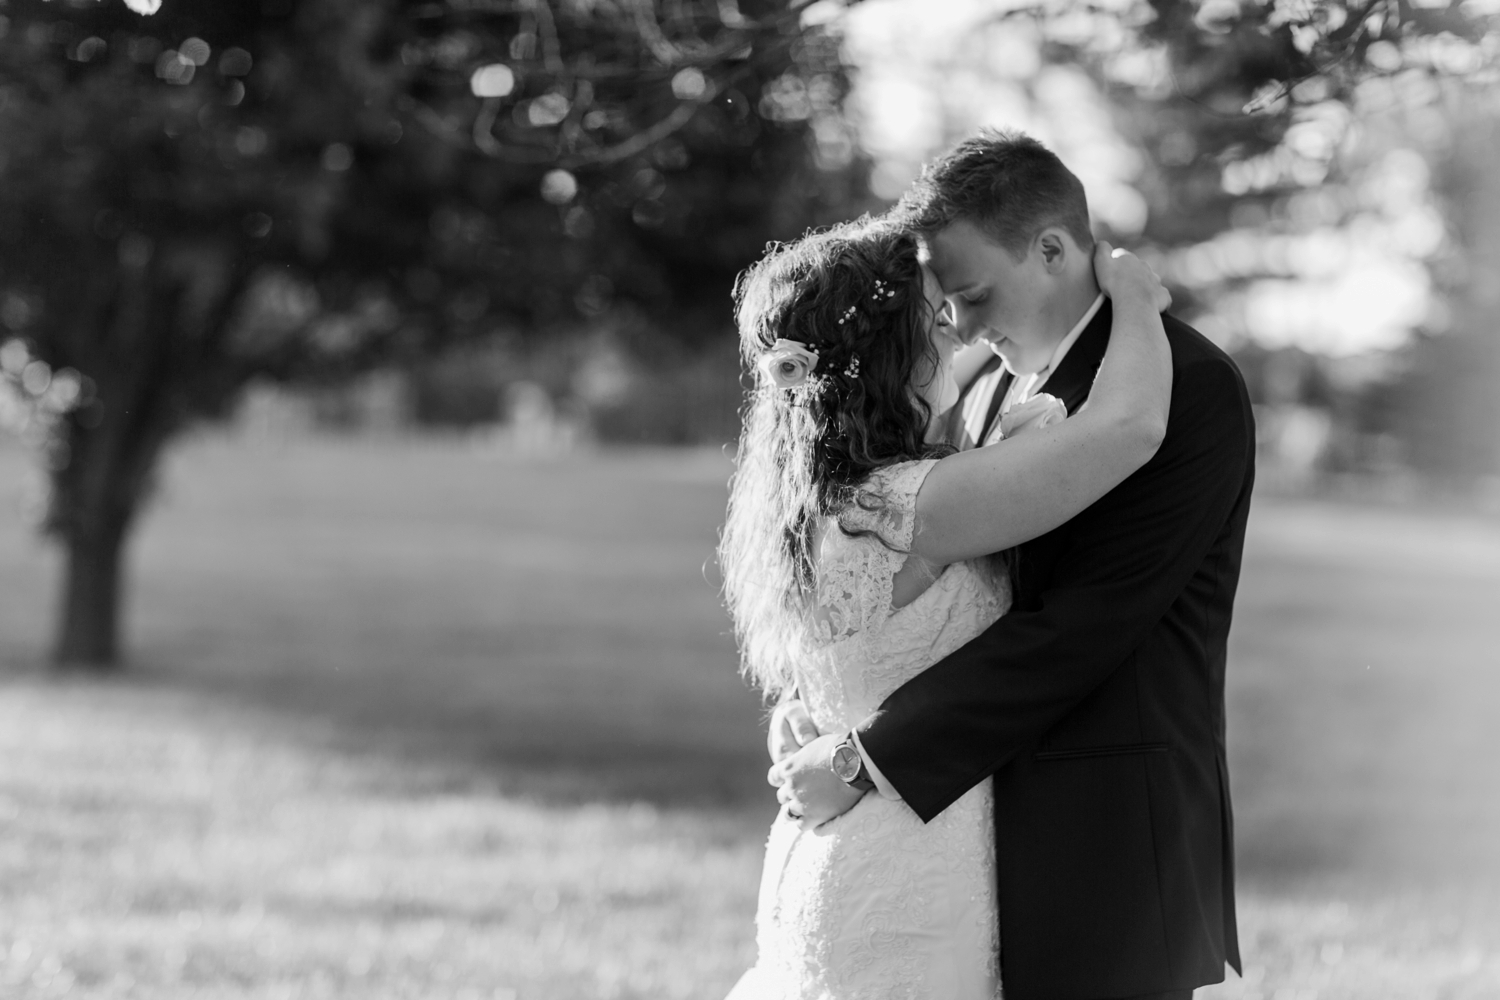 Community_Life_Center_Indianapolis_Indiana_Wedding_Photographer_Chloe_Luka_Photography_6992.jpg